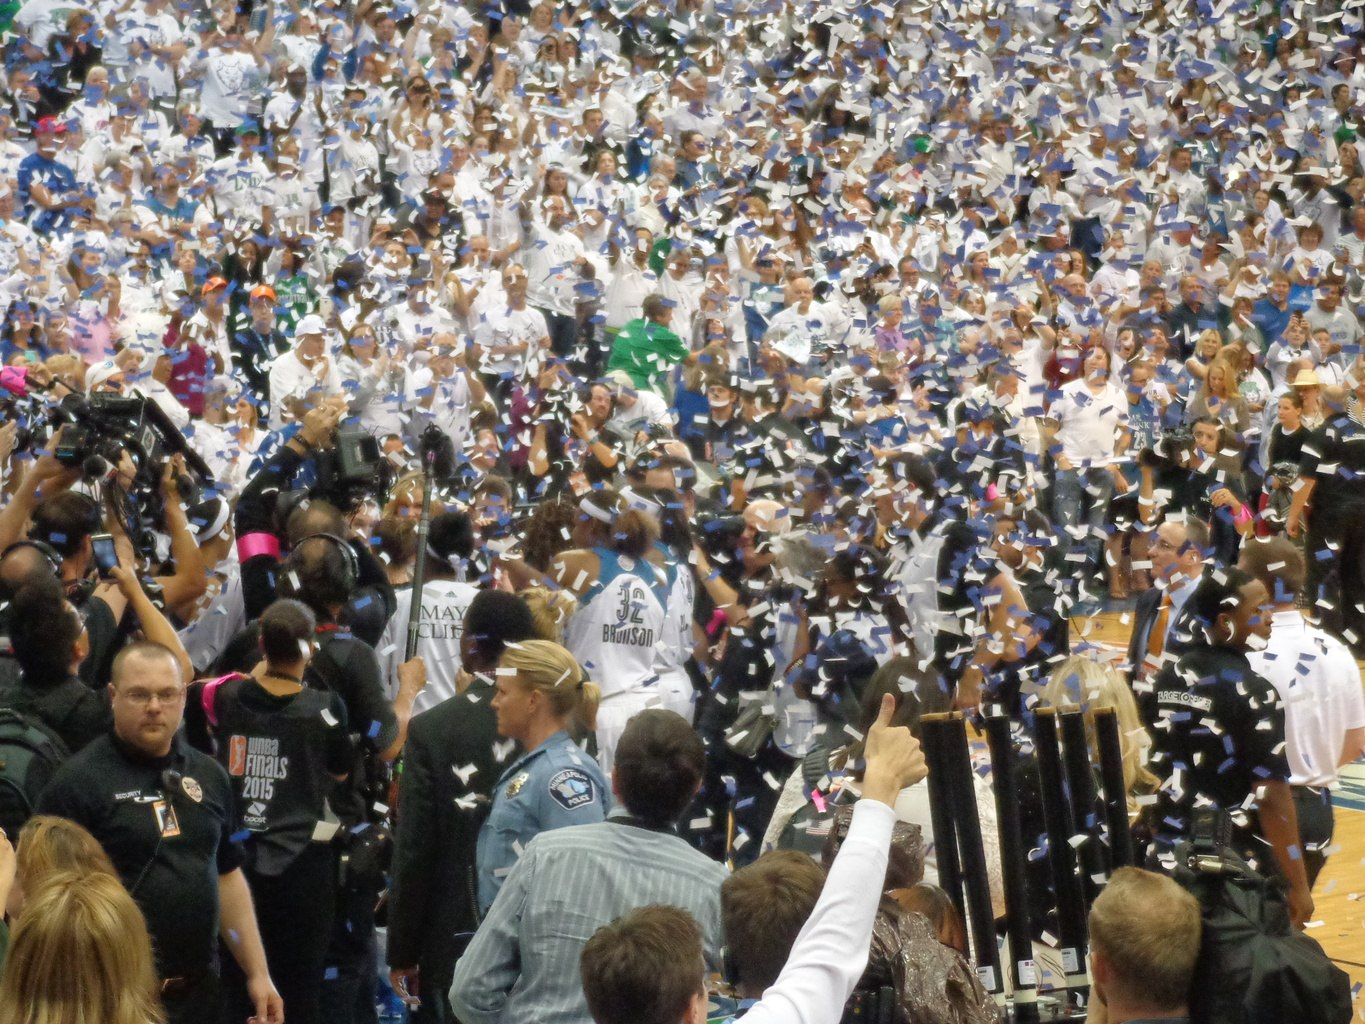 The Lynx celebrating their third final championship